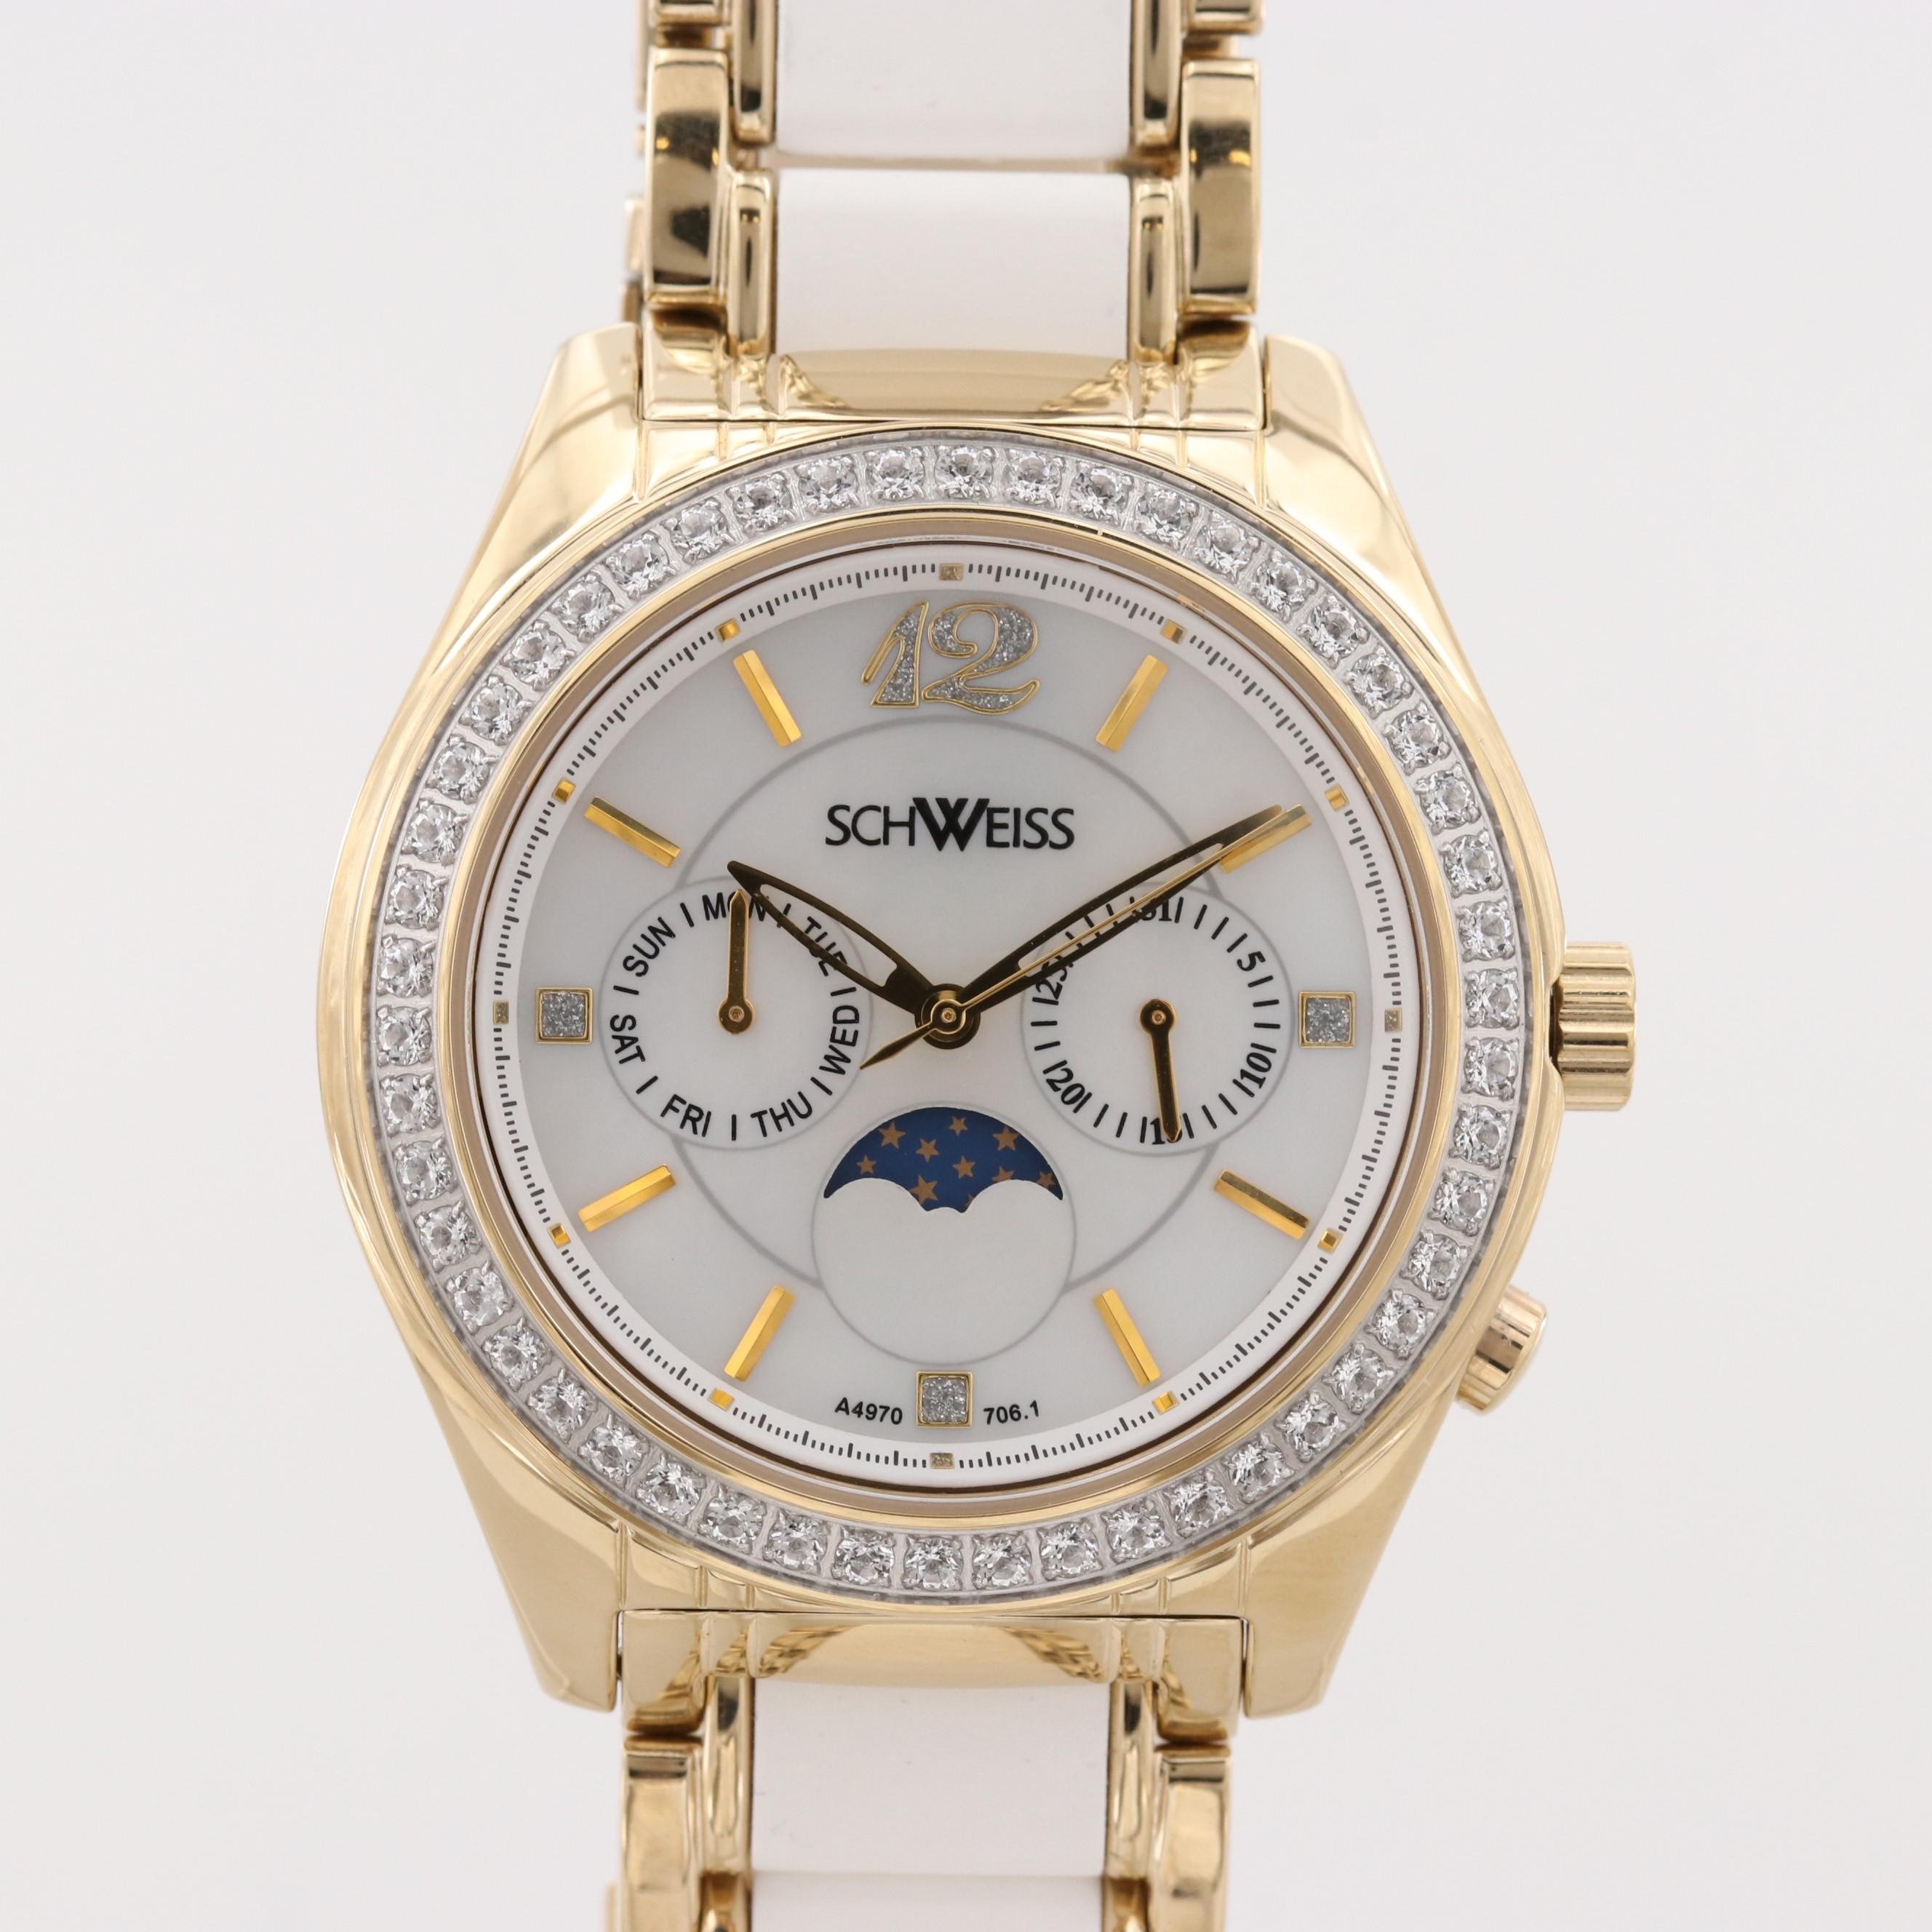 Schweiss Gold Tone Wristwatch With White Topaz Bezel